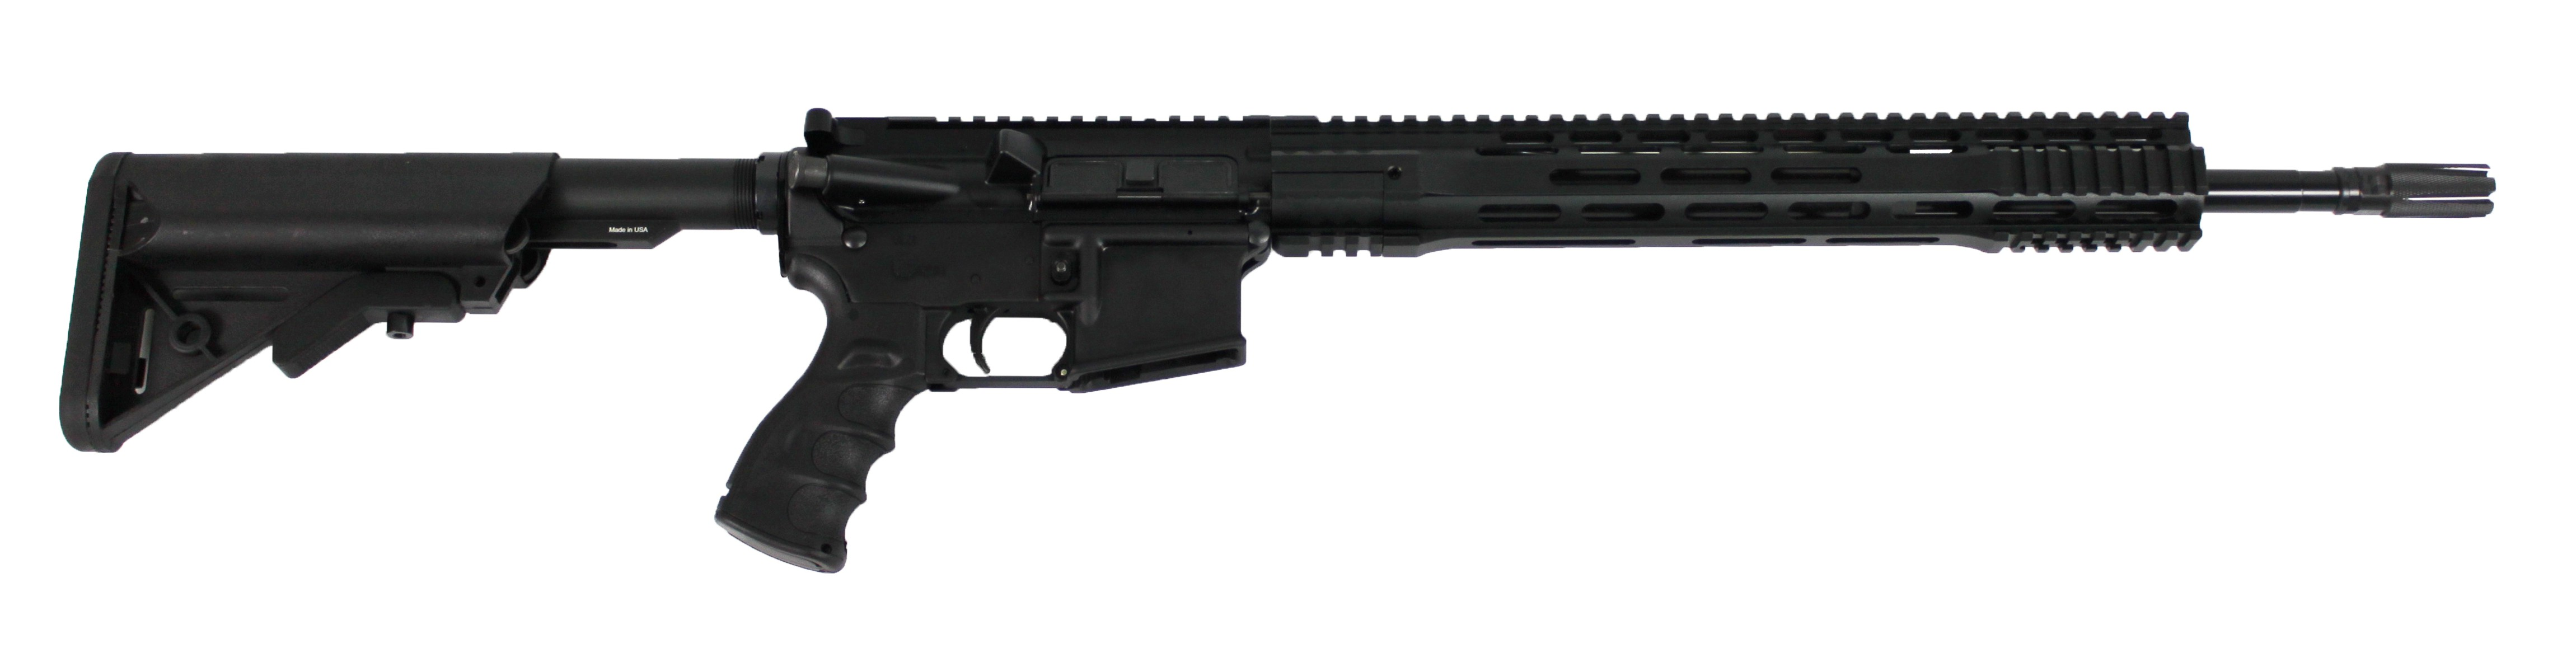 cbc industries ar 15 tactical cy6 6 5 grendel rifle